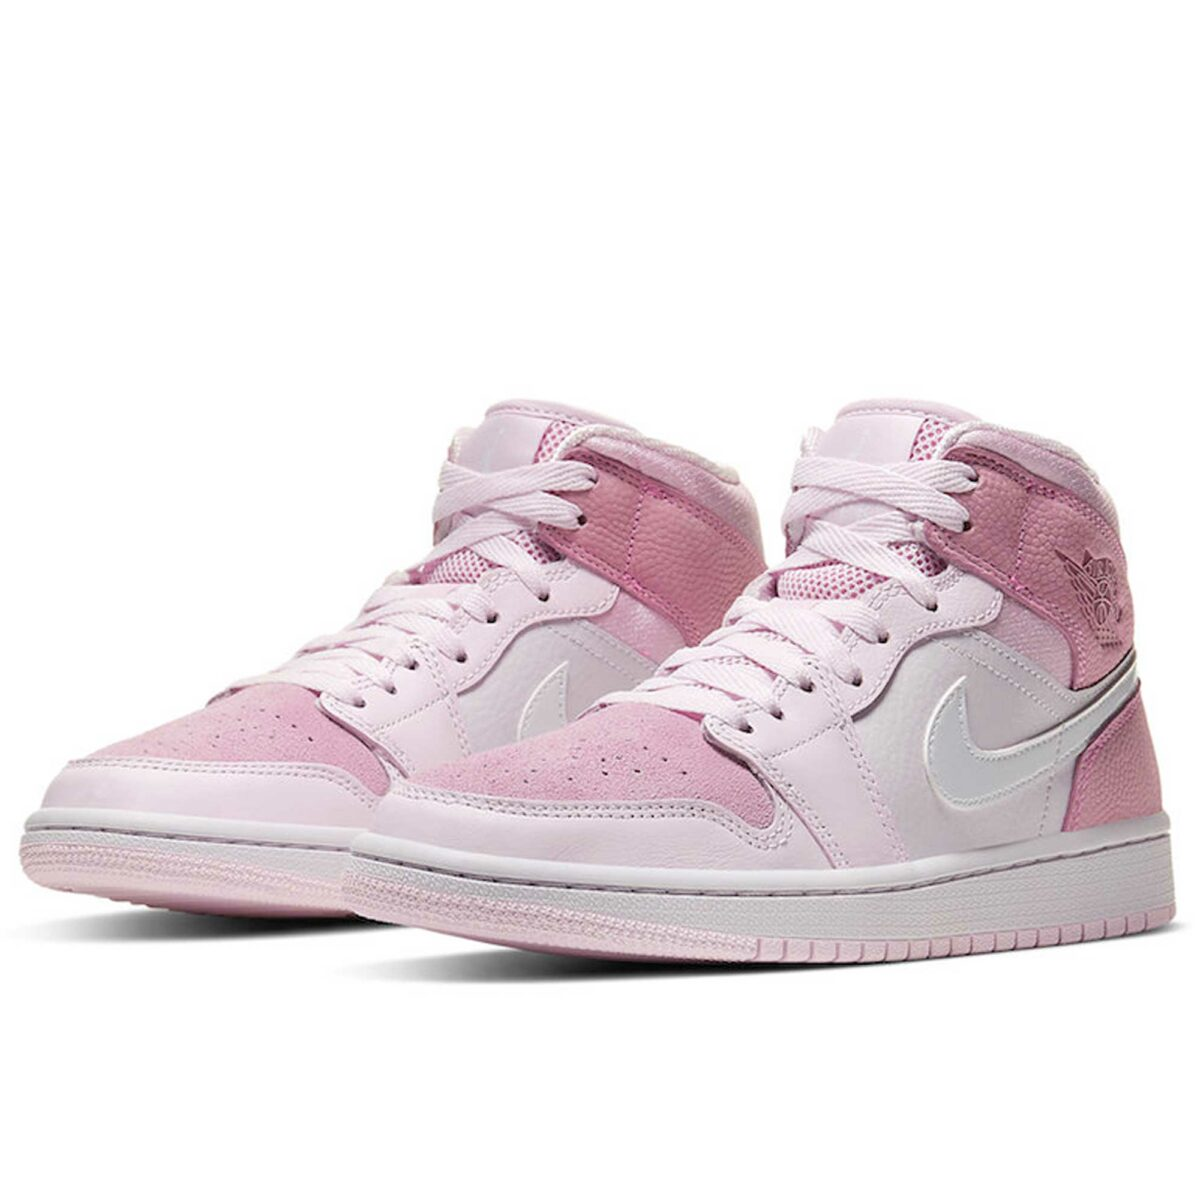 nike air Jordan 1 mid digital pink CW5379_600 купить